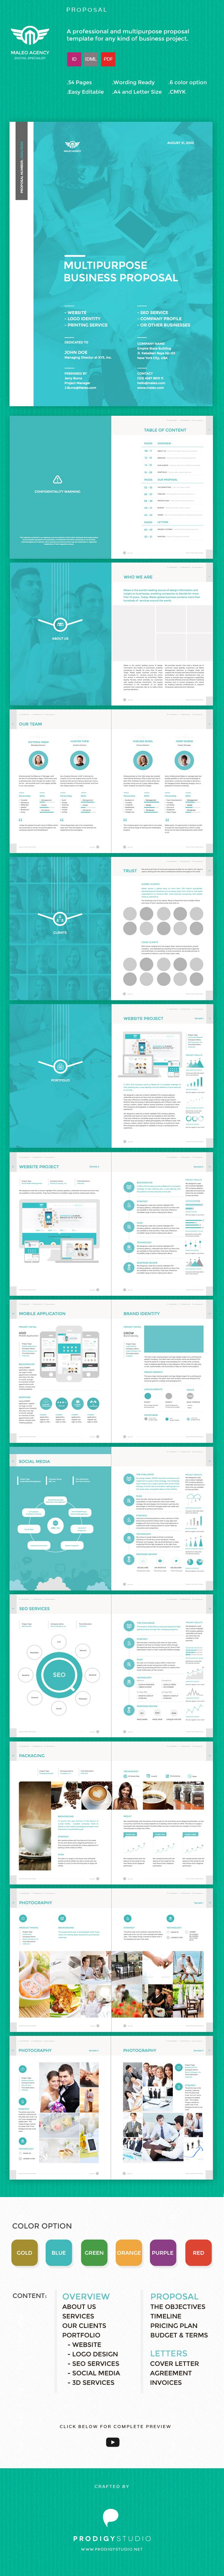 Maleo Proposal is clean layout and professional design, best choice for your project proposal.  Download here: http://graphicriver.net/item/maleo-multi-purpose-proposal-template/7562638?ref=prodigystudio